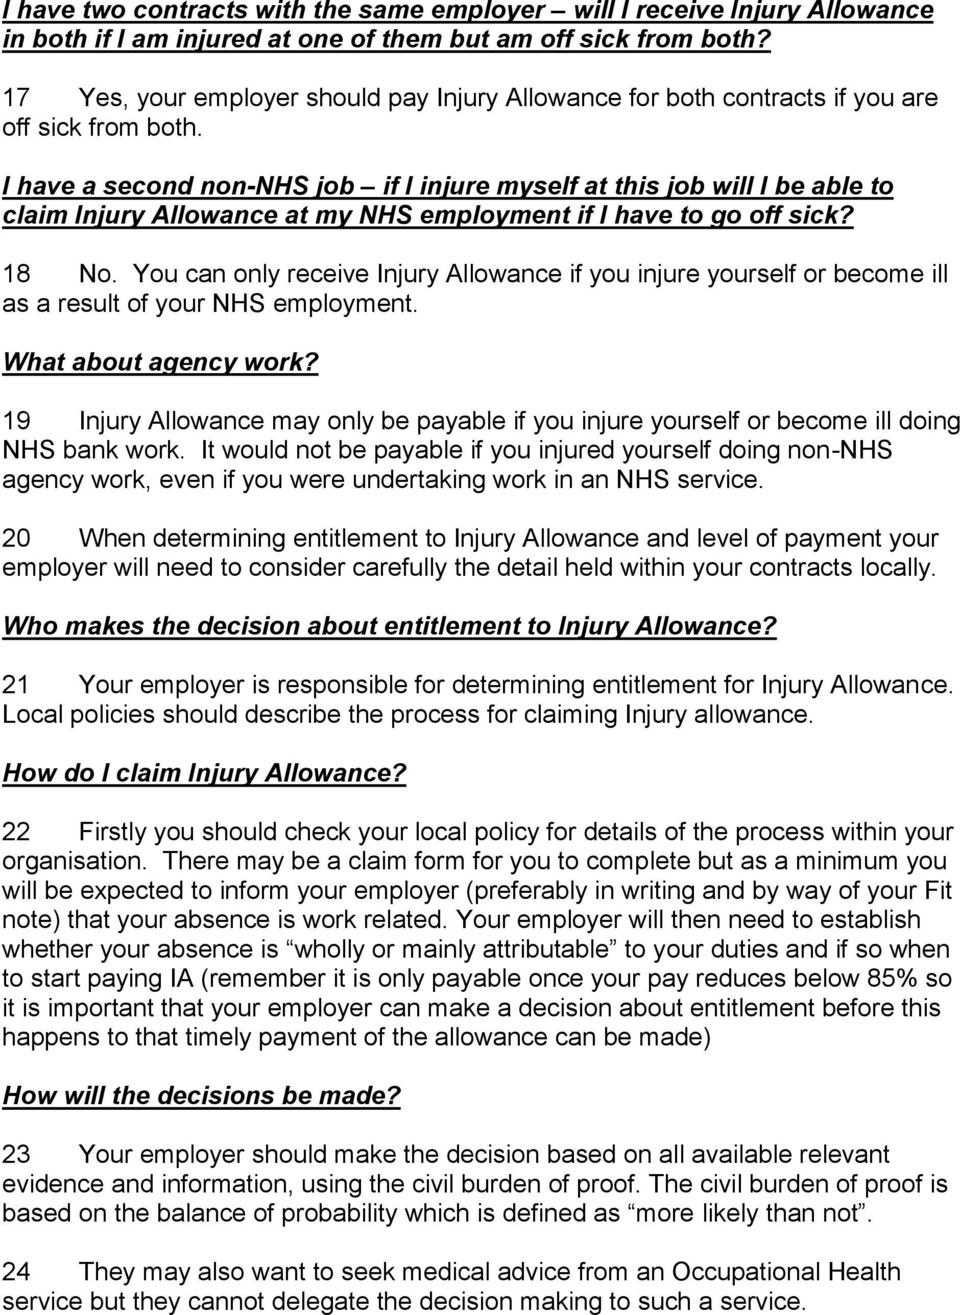 I have a second non-nhs job if I injure myself at this job will I be able to claim Injury Allowance at my NHS employment if I have to go off sick? 18 No.